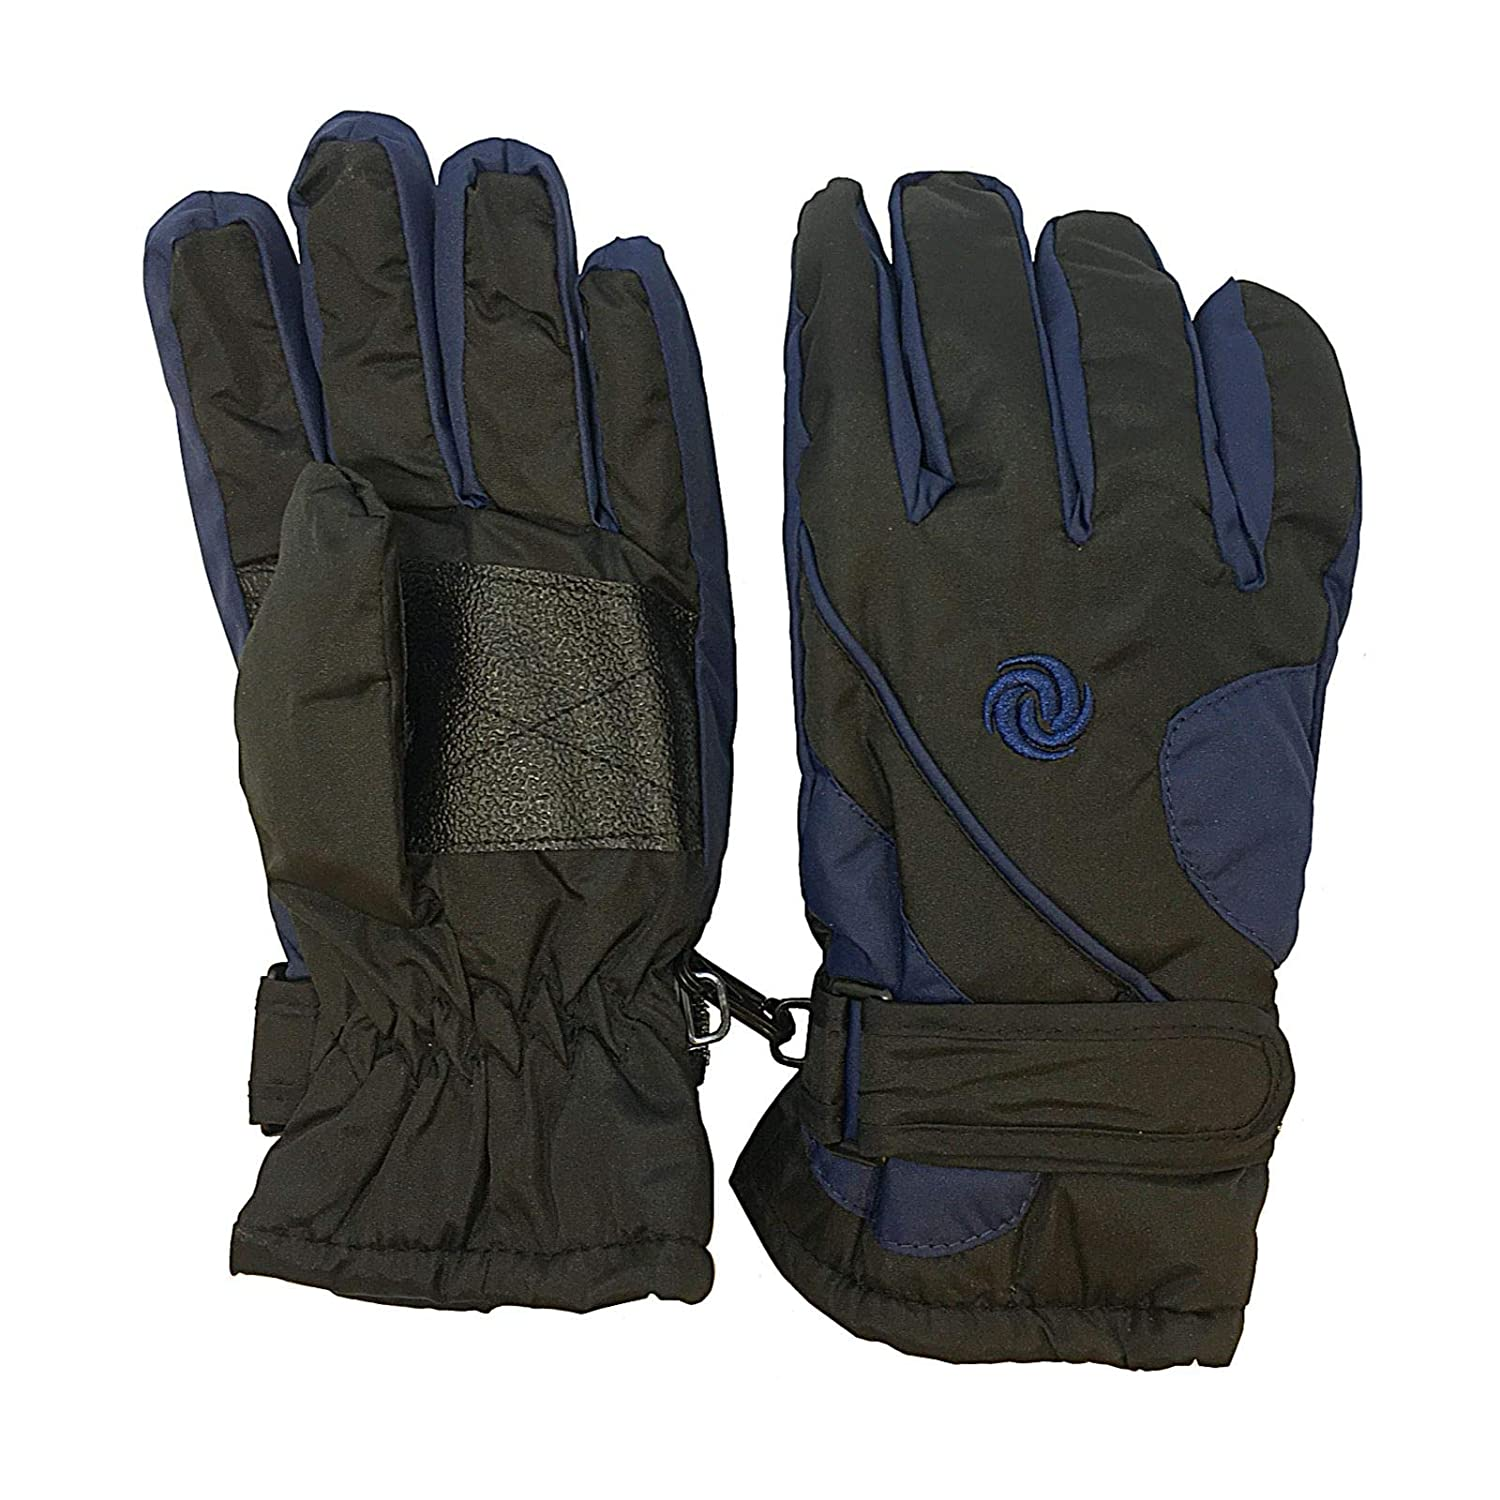 Kids Winter Ski Thermal Gloves for Boys in Various Colours (4-12 Years)